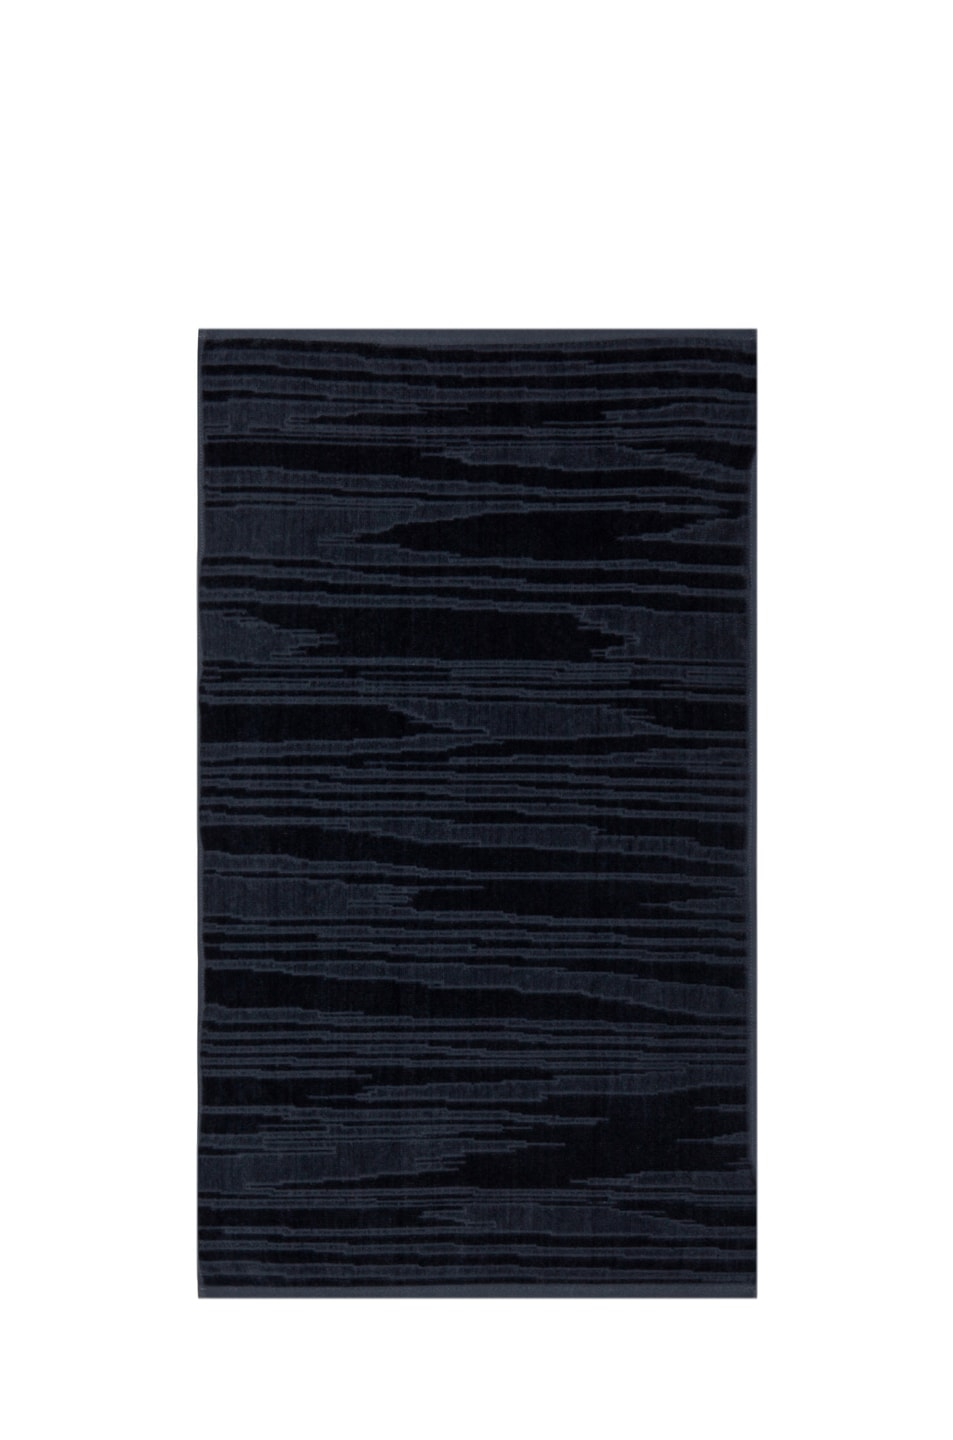 Image 3 of Missoni Home Kian 2 Piece Towel Set in Charcoal